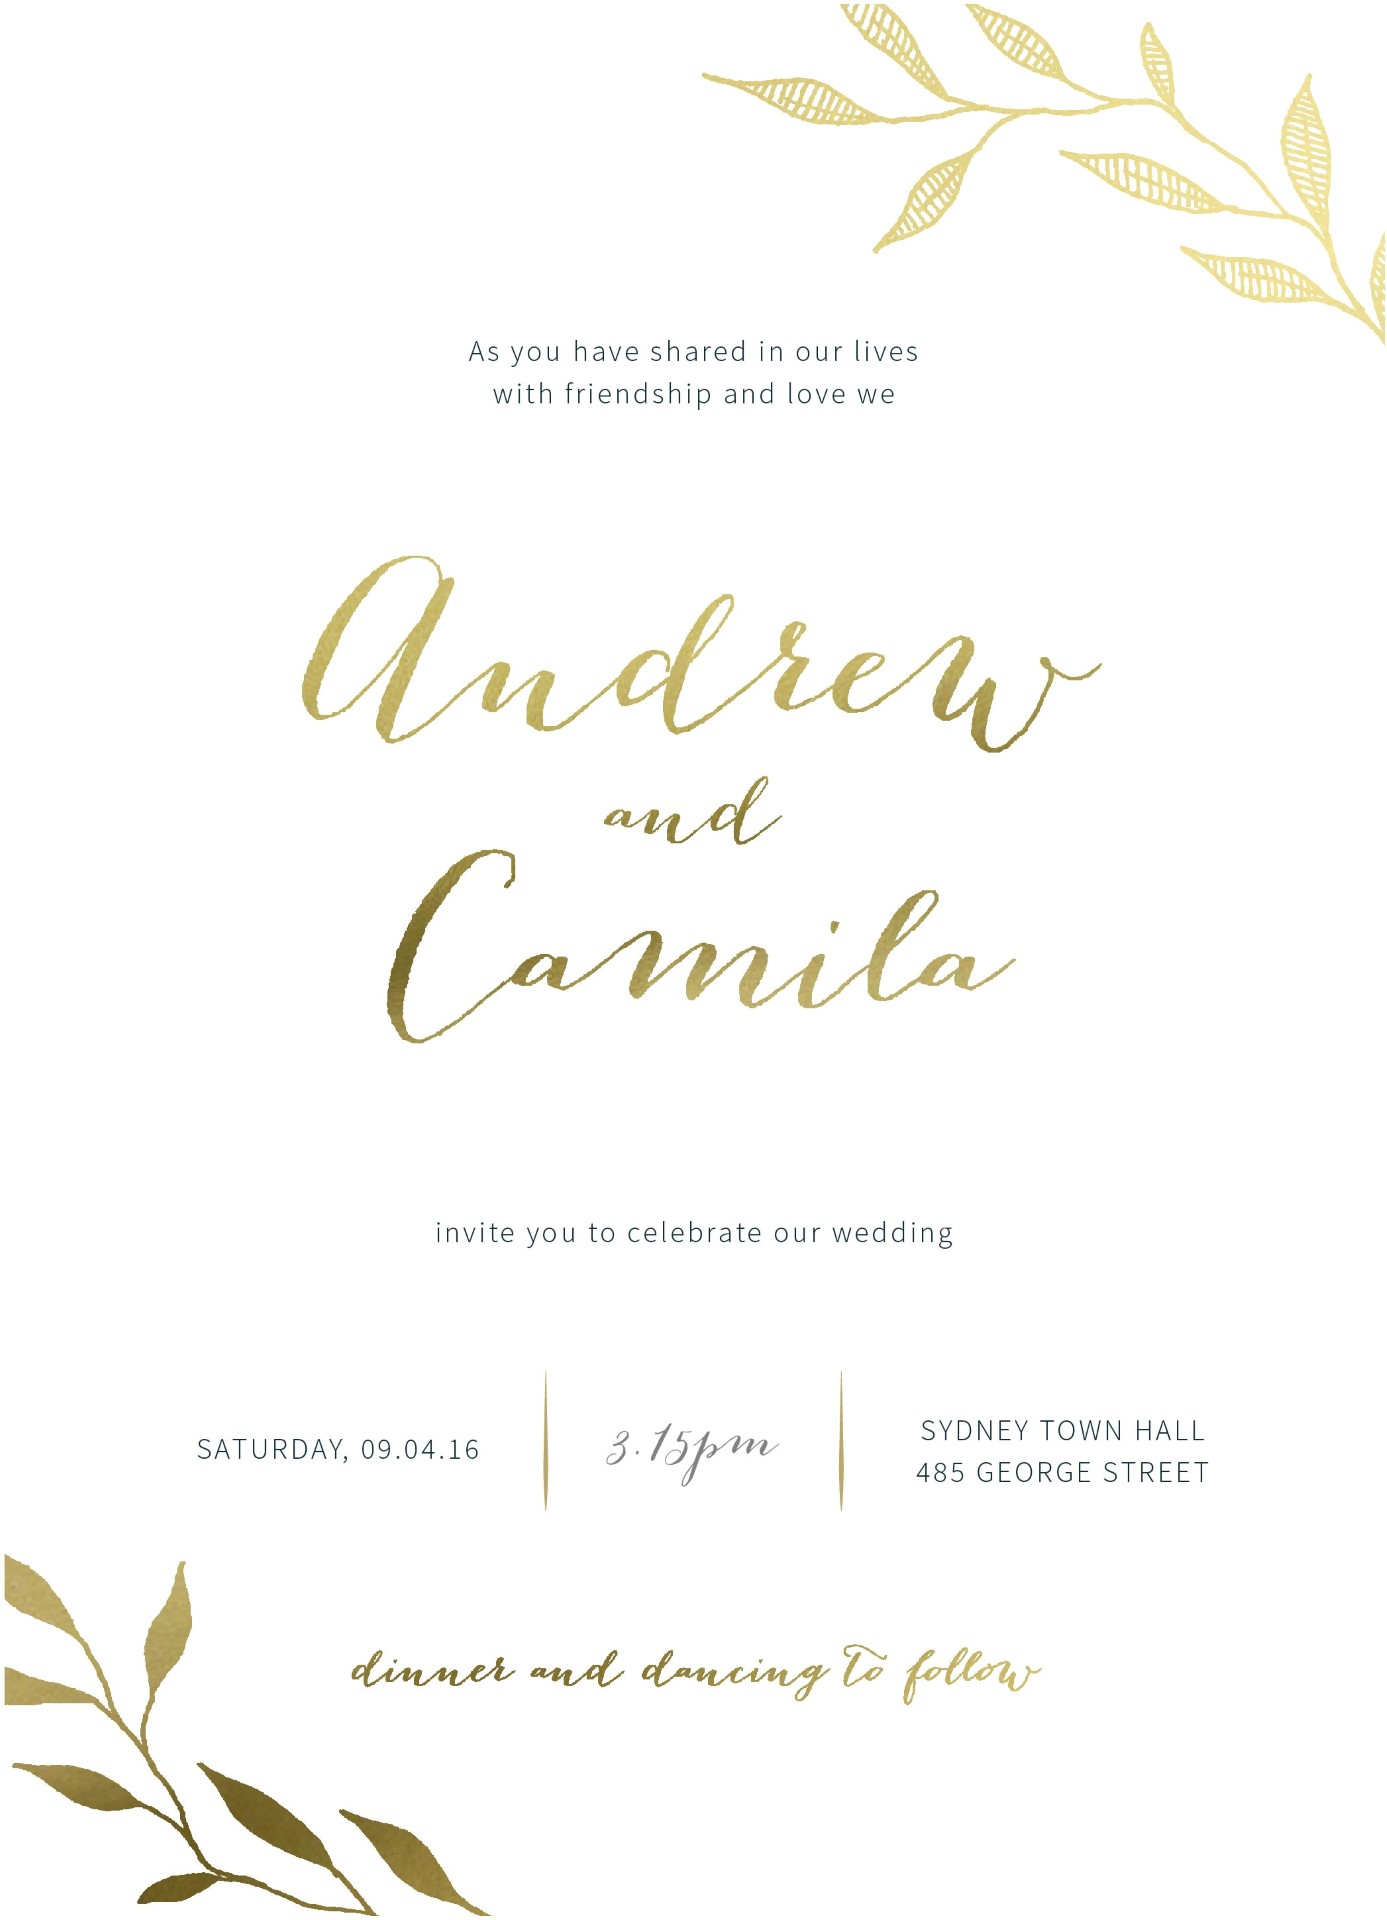 Wedding invitations online designs by australian designers leaves wedding invitations solutioingenieria